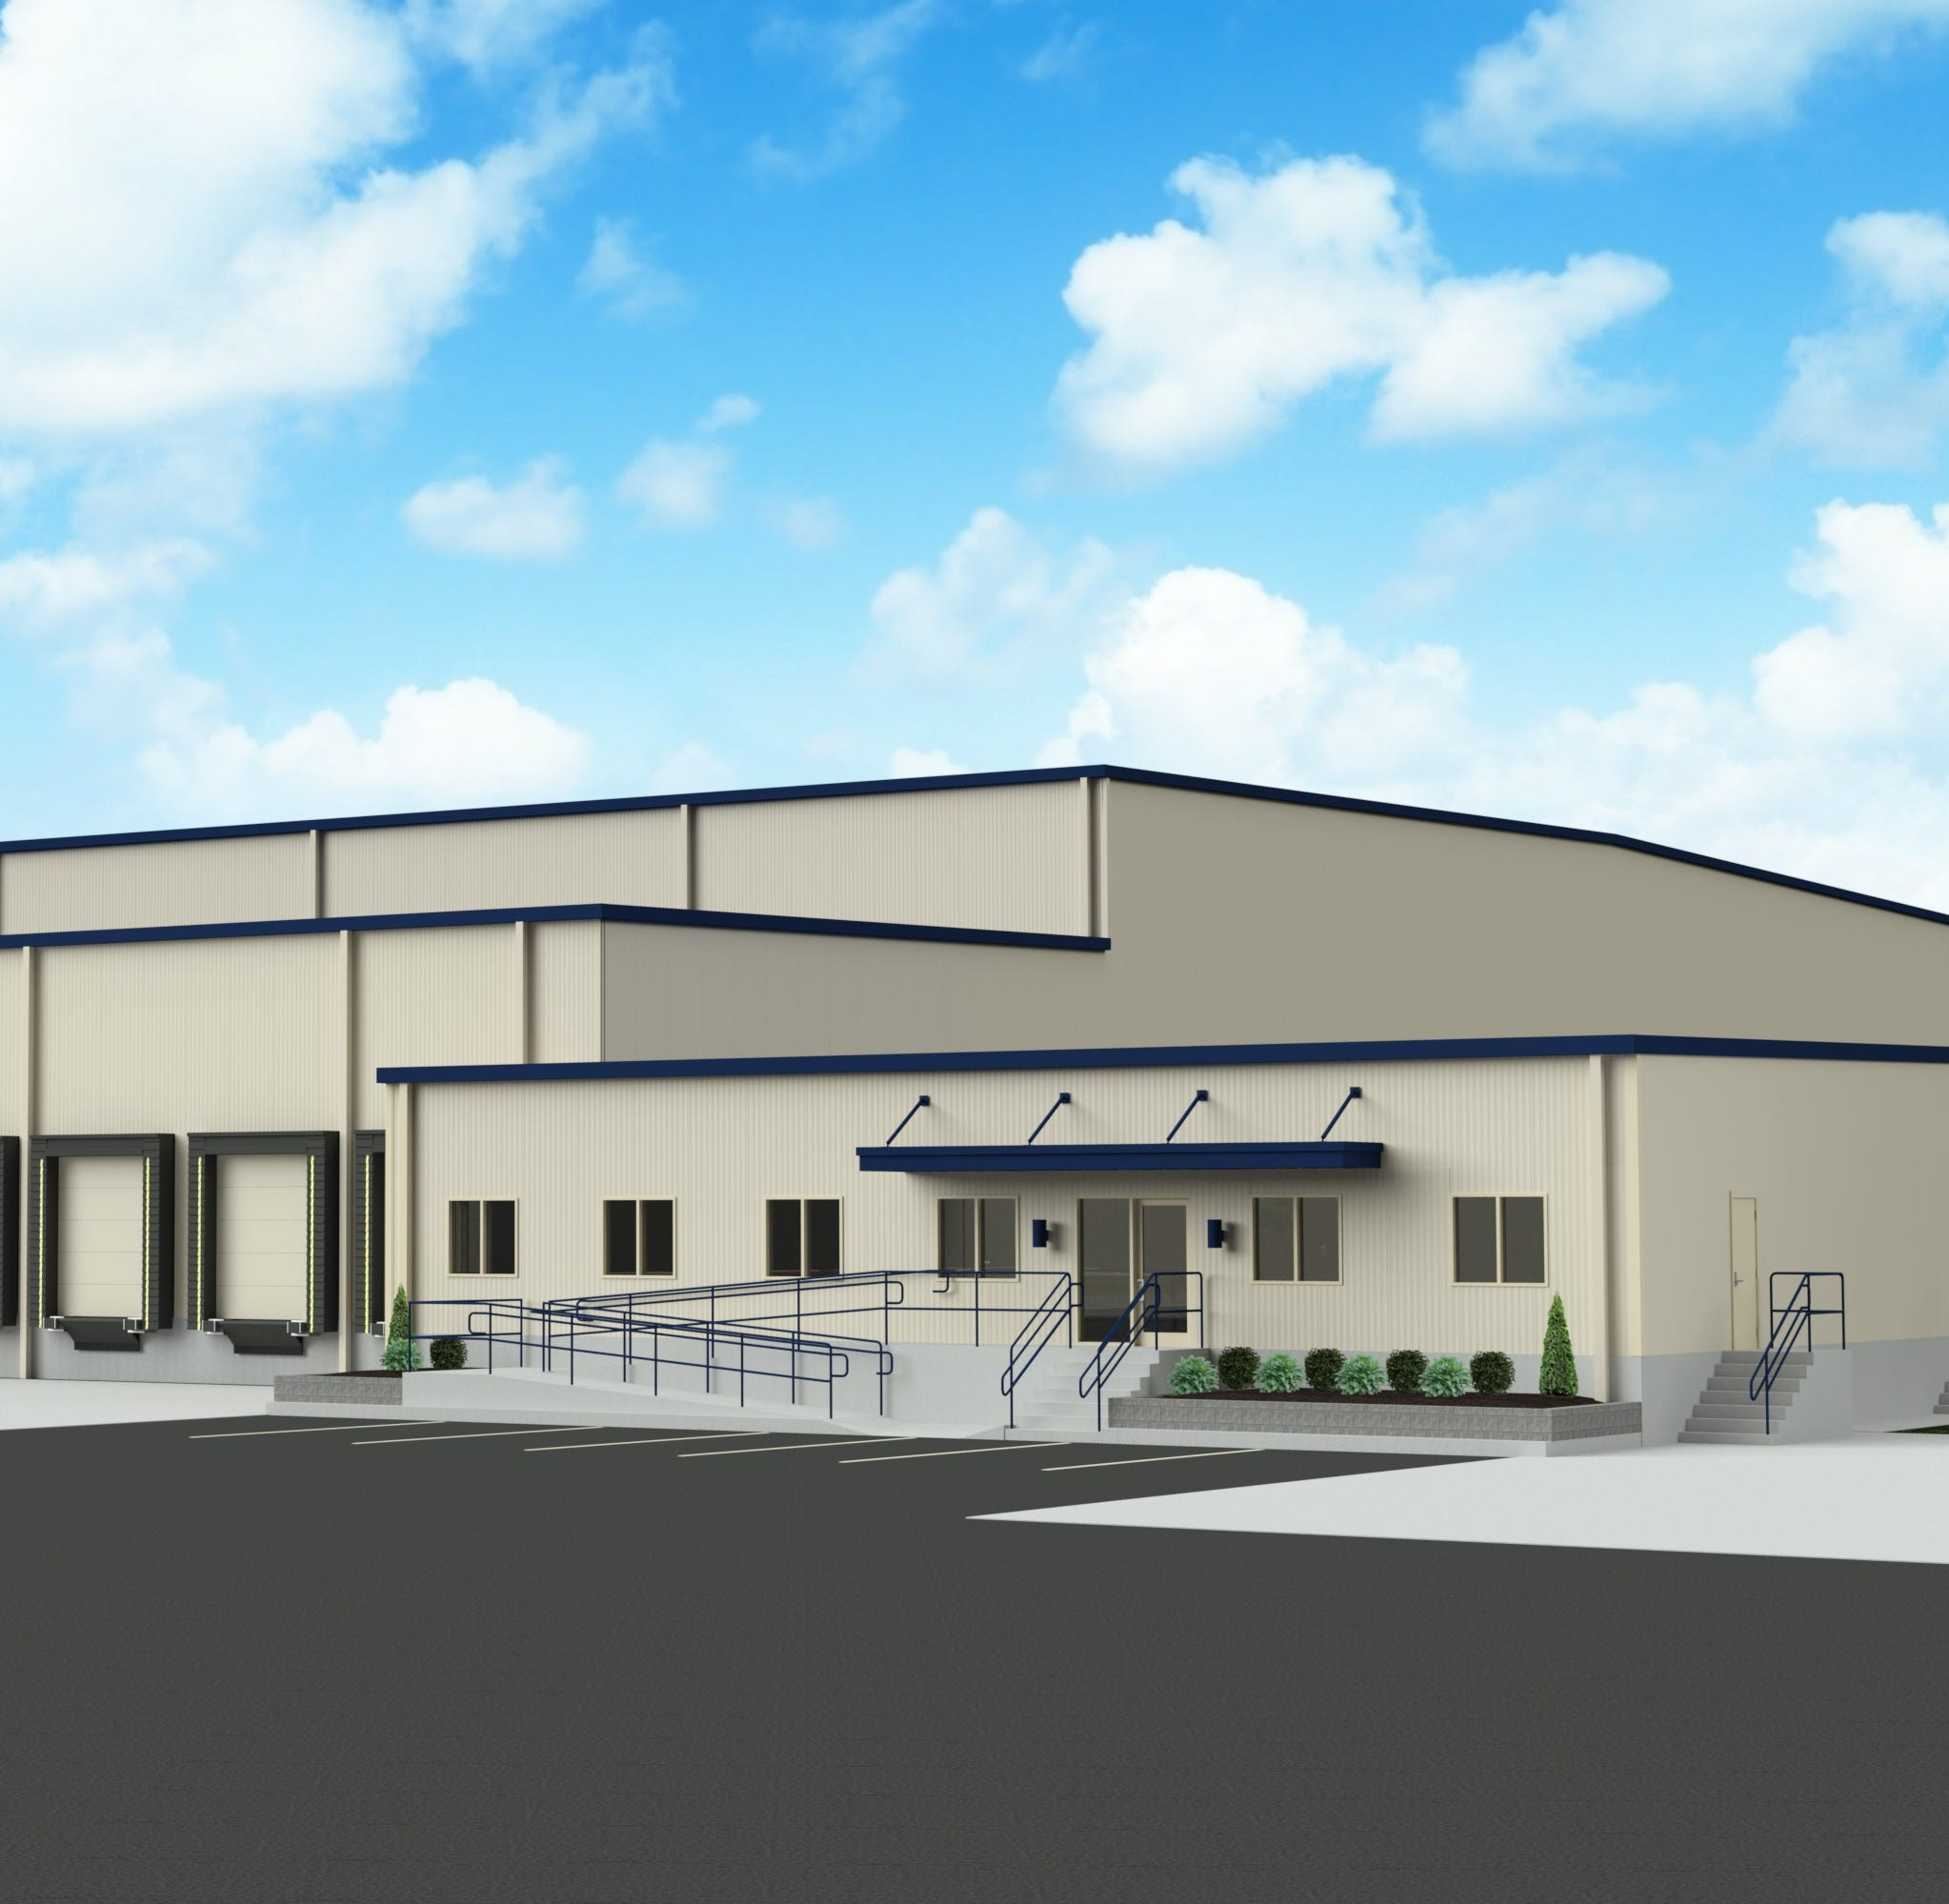 New $6M cold storage facility coming to Vineland